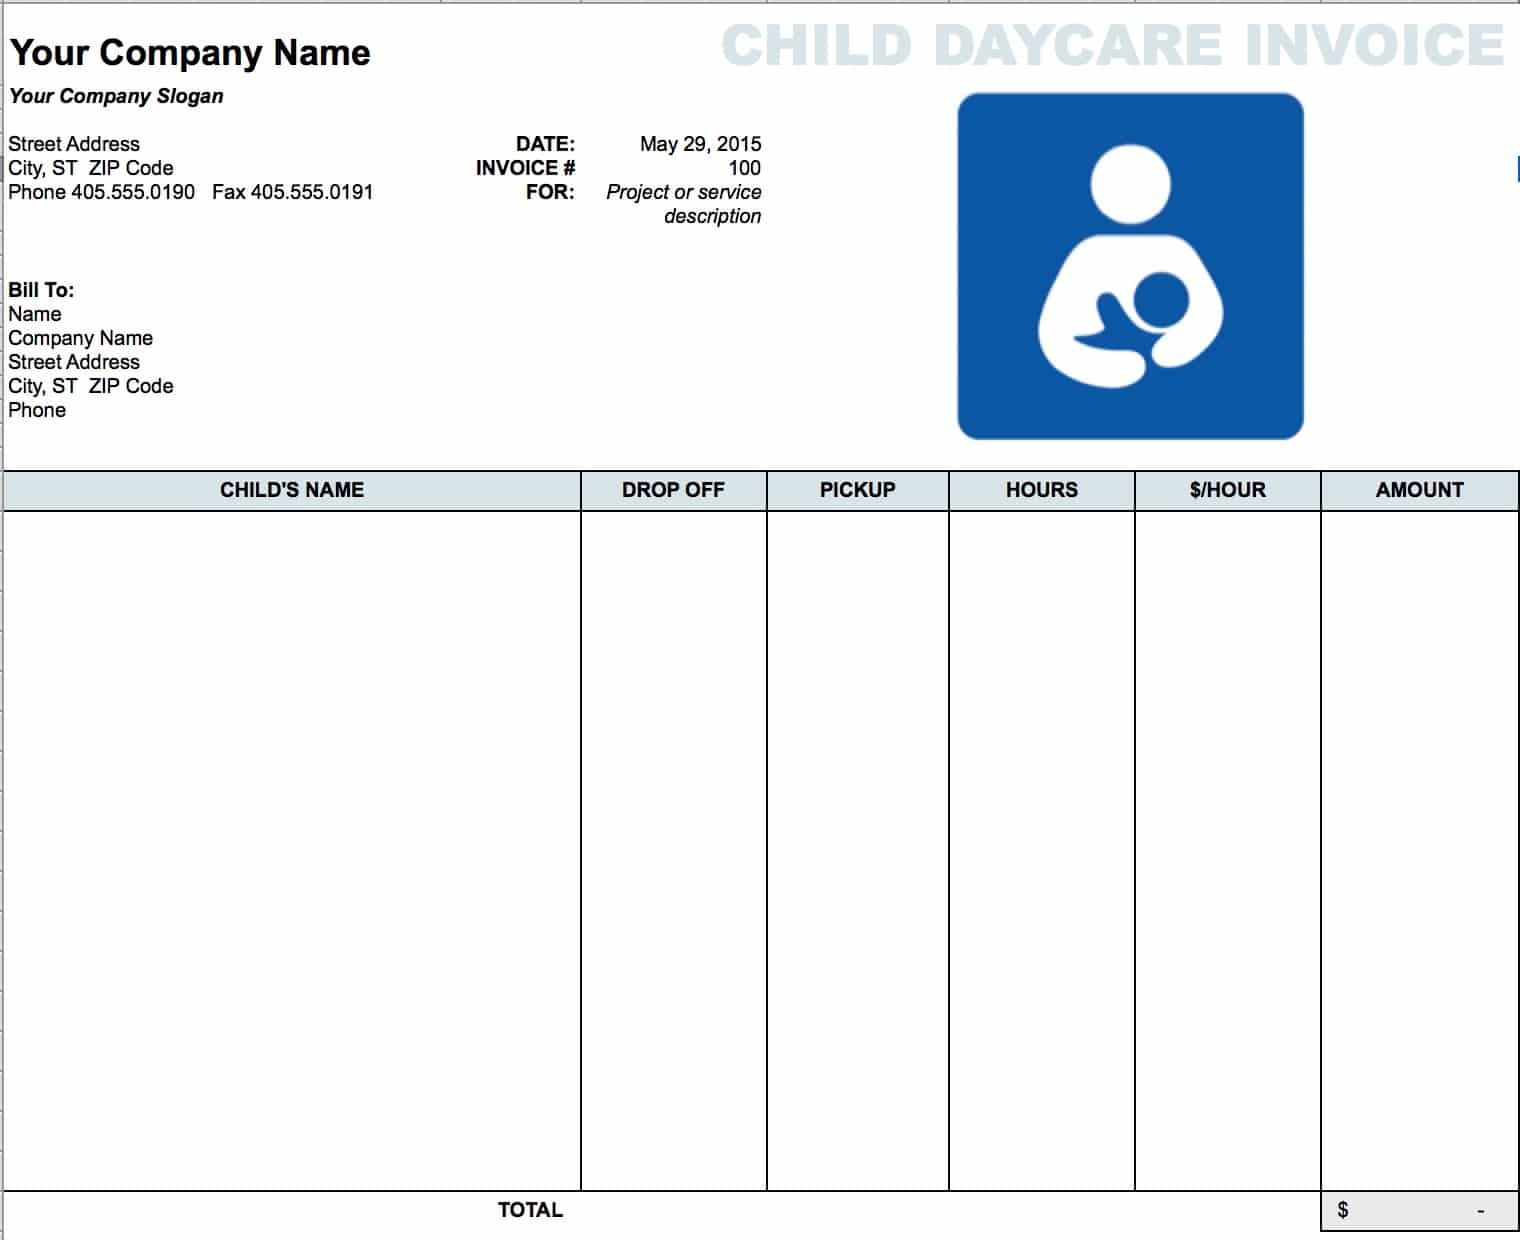 Free Daycare Child Invoice Template Excel PDF Word Doc - Microsoft word templates invoice for service business